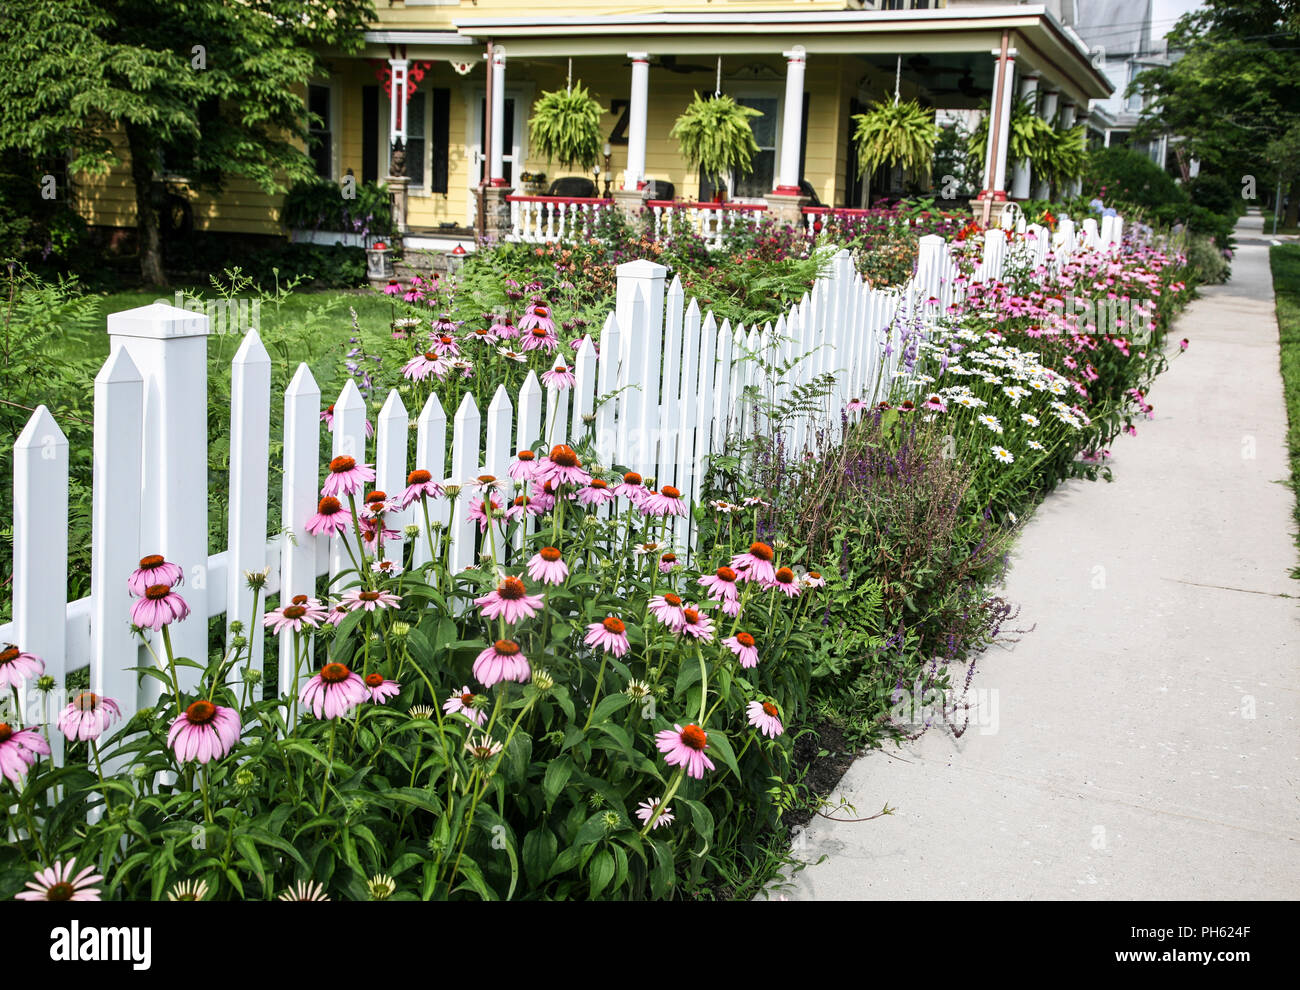 White picket fence with a flower border and victorian house in white picket fence with a flower border and victorian house in babkground mercer county new jersey usa united states mightylinksfo